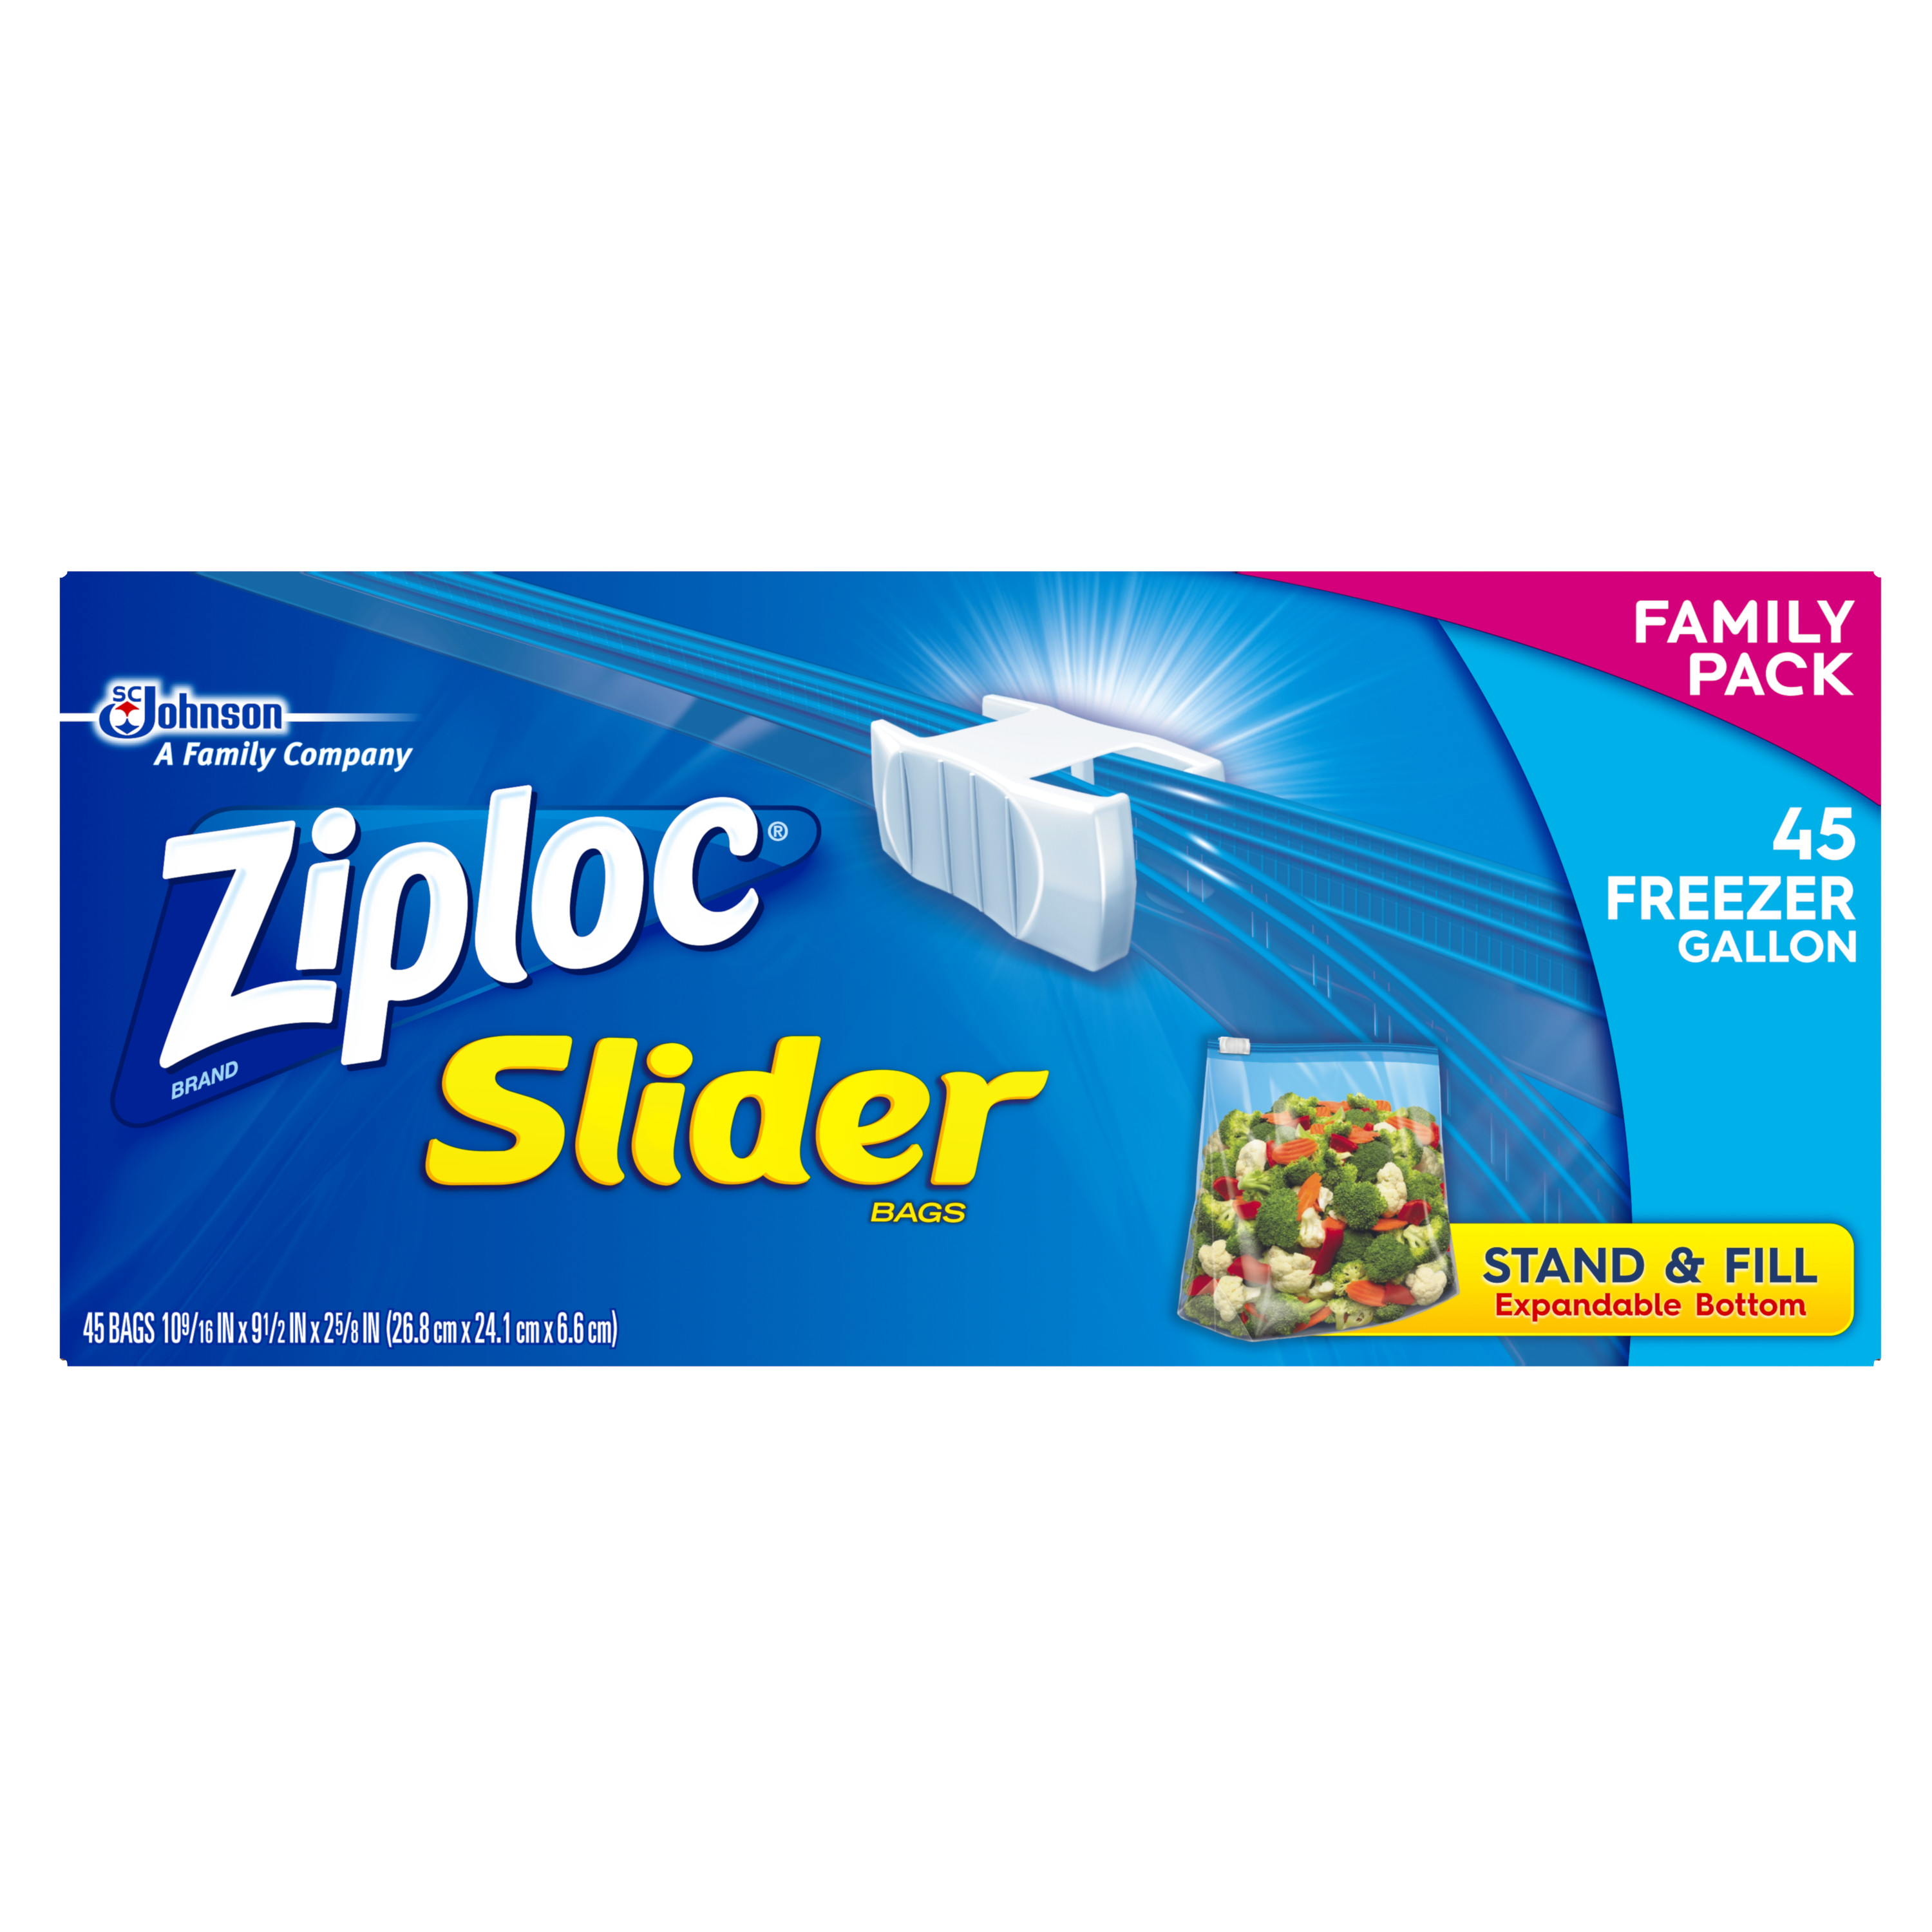 Ziploc Slider Freezer Bags, Gallon, 45 Ct